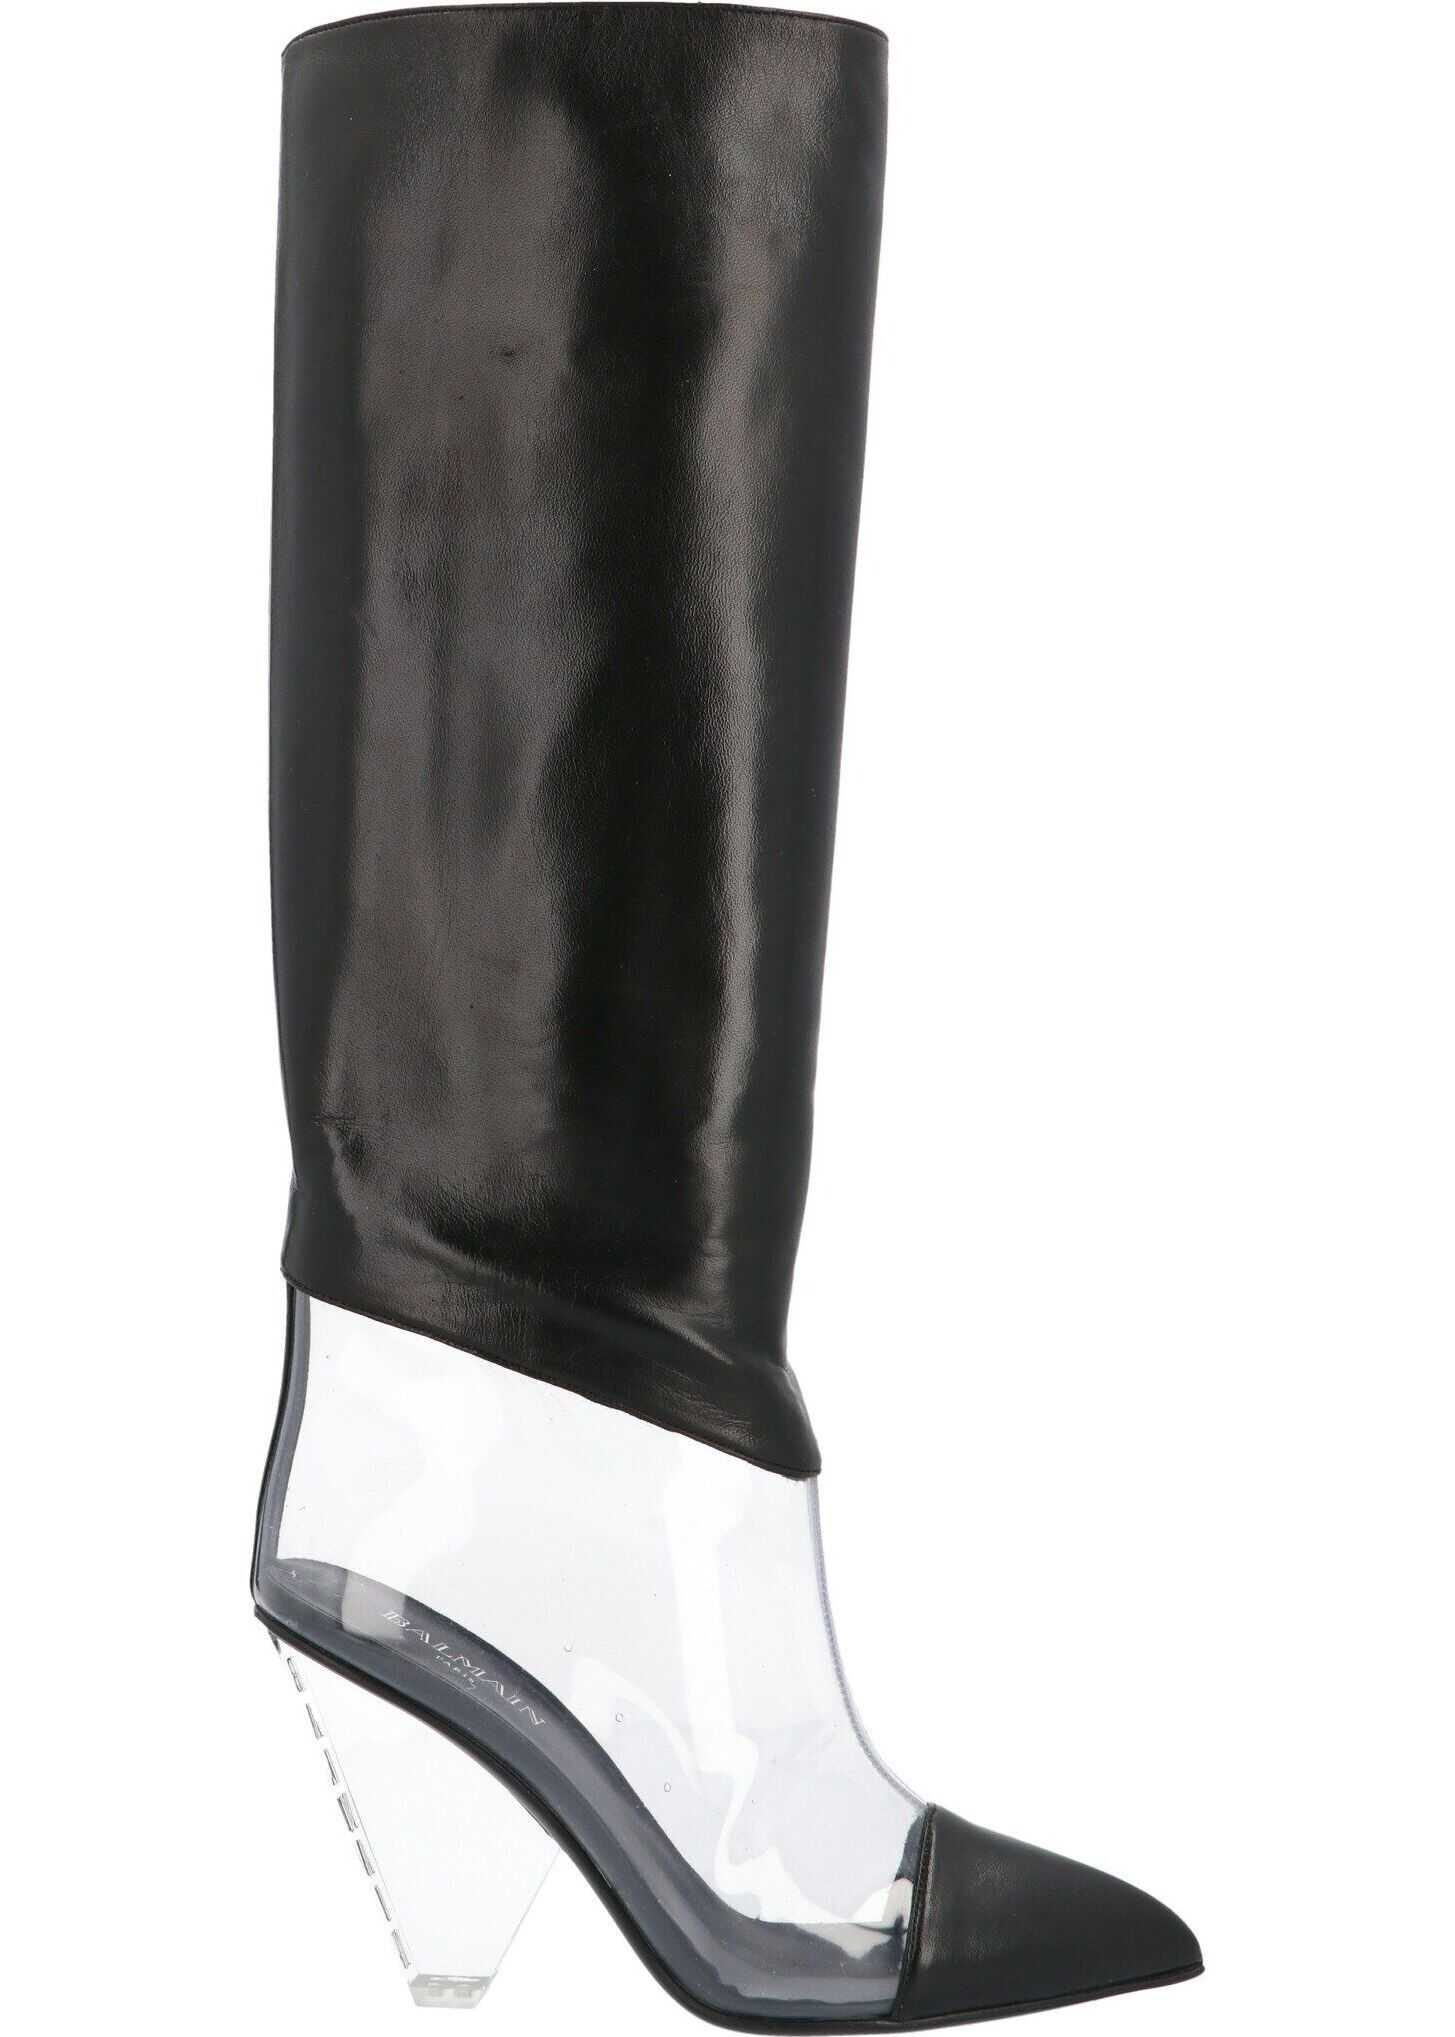 Balmain Leather Boots BLACK